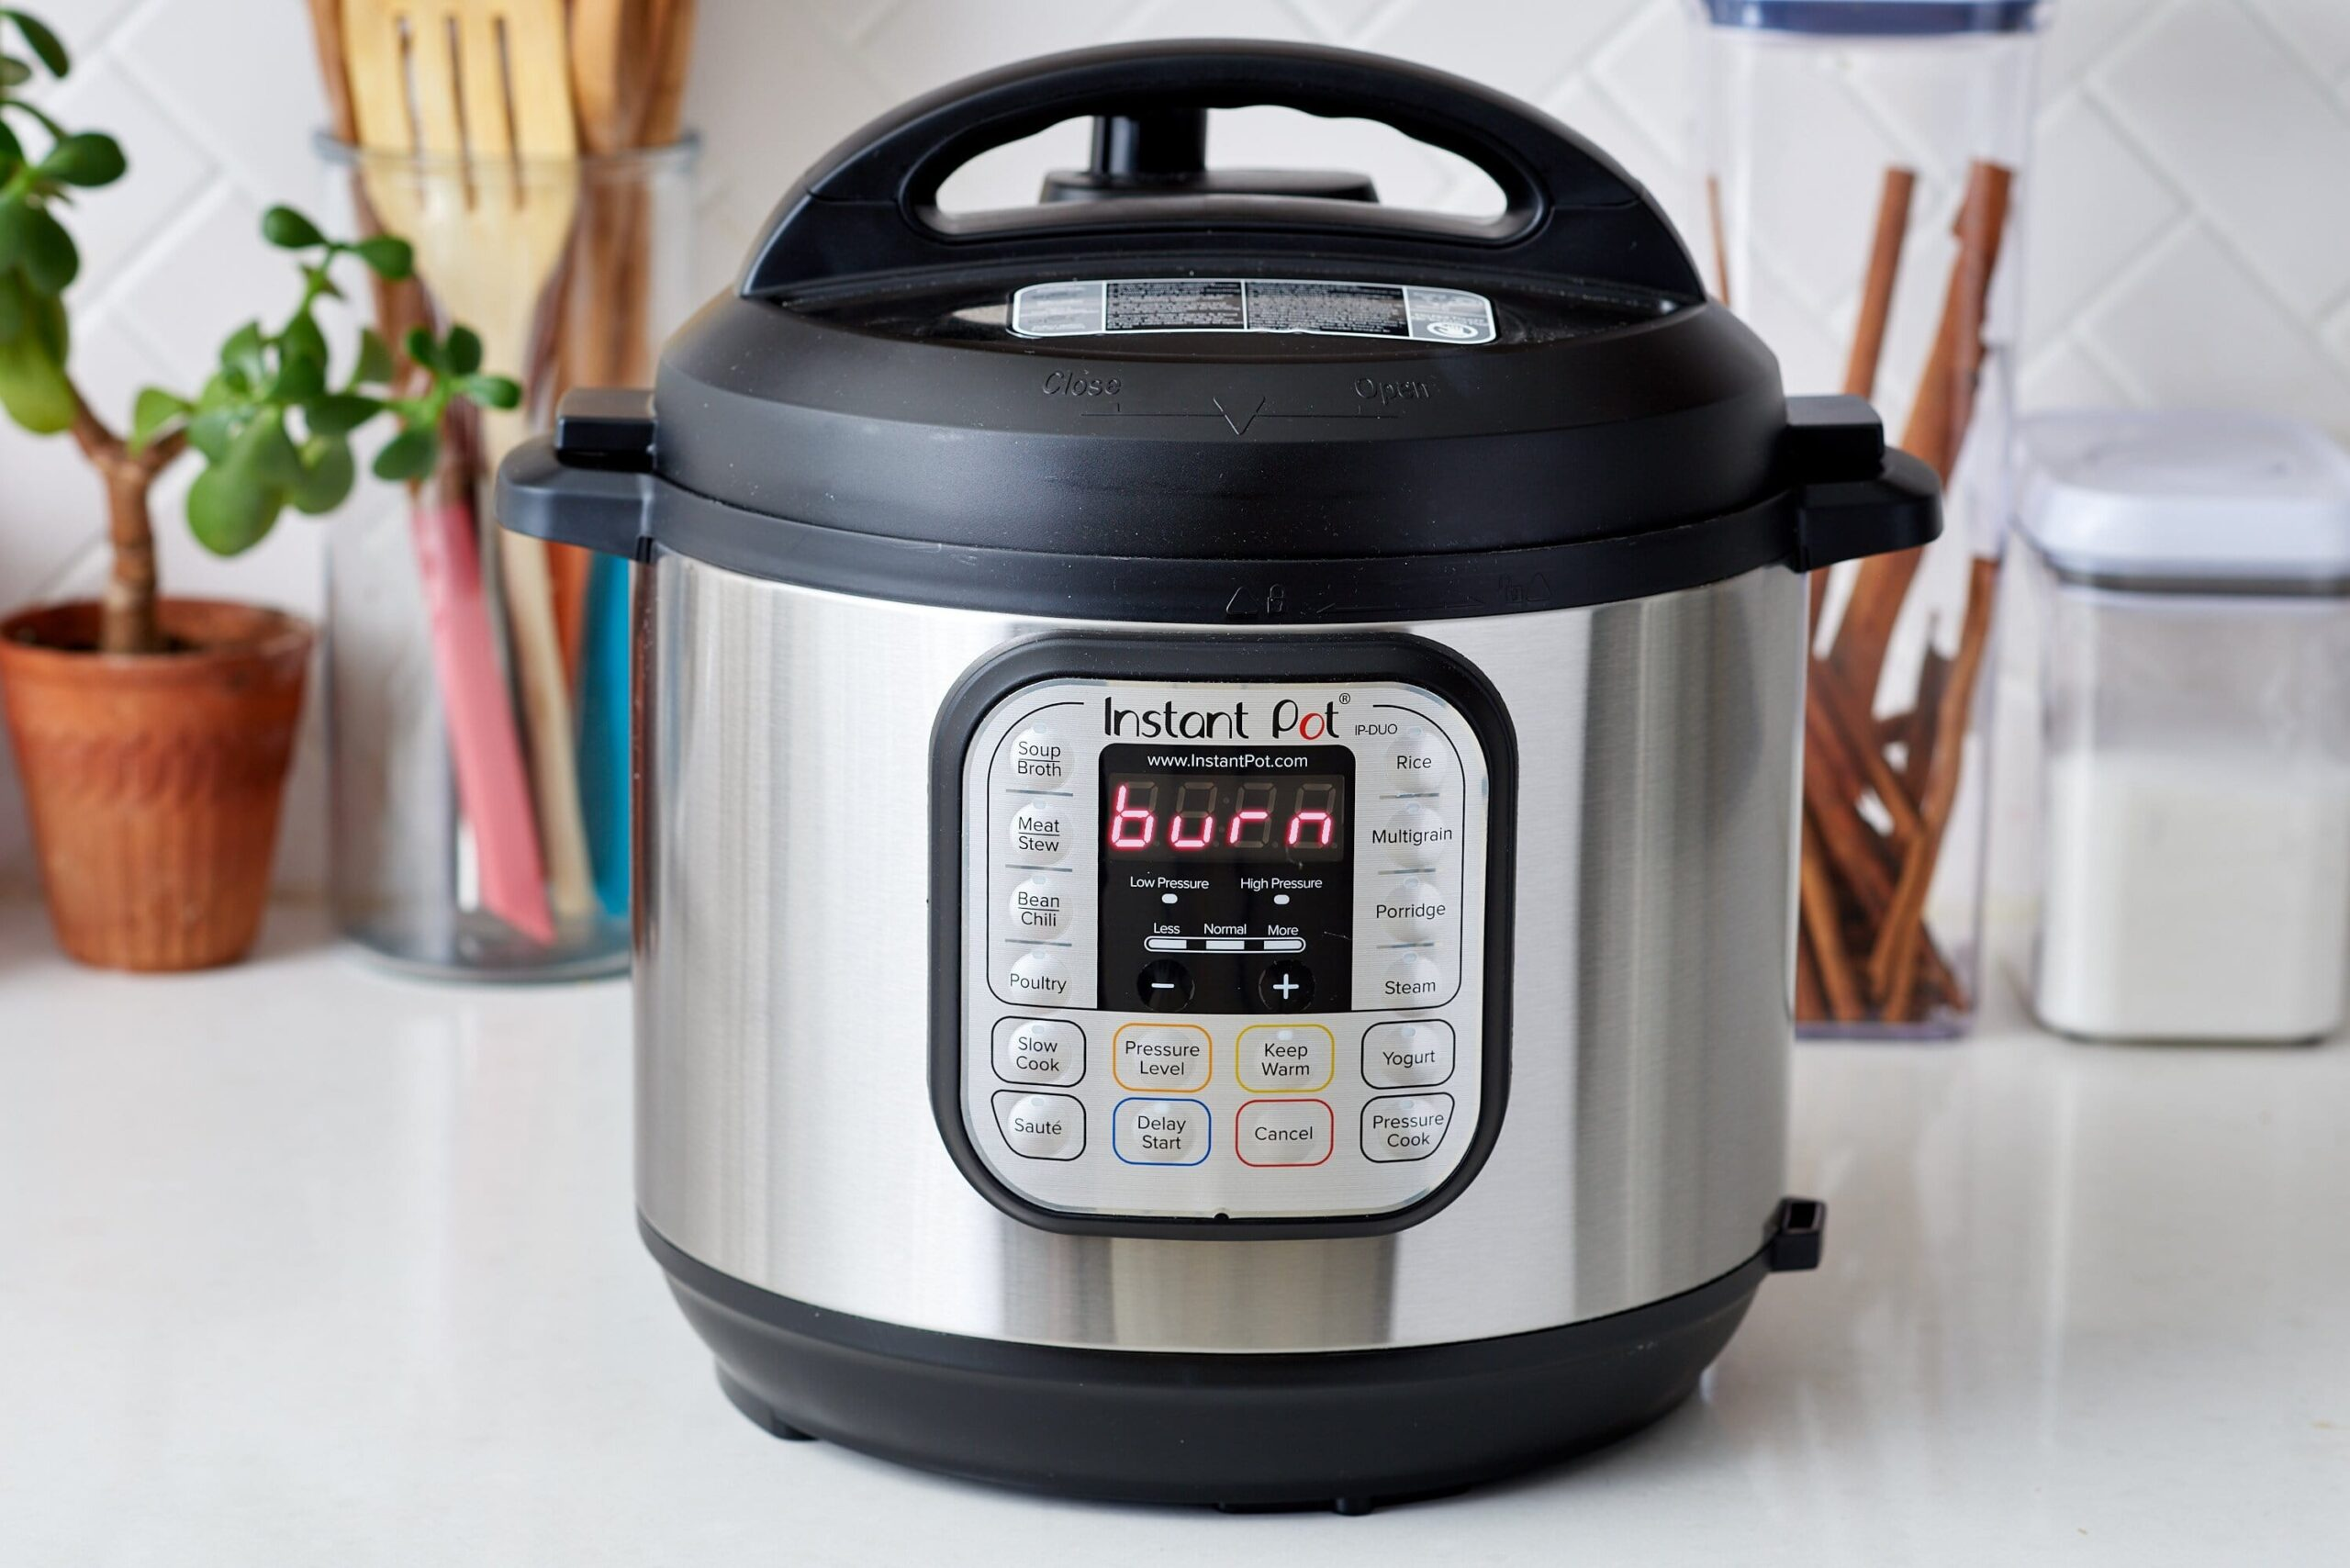 Why Does My Instant Pot Say Burn 1